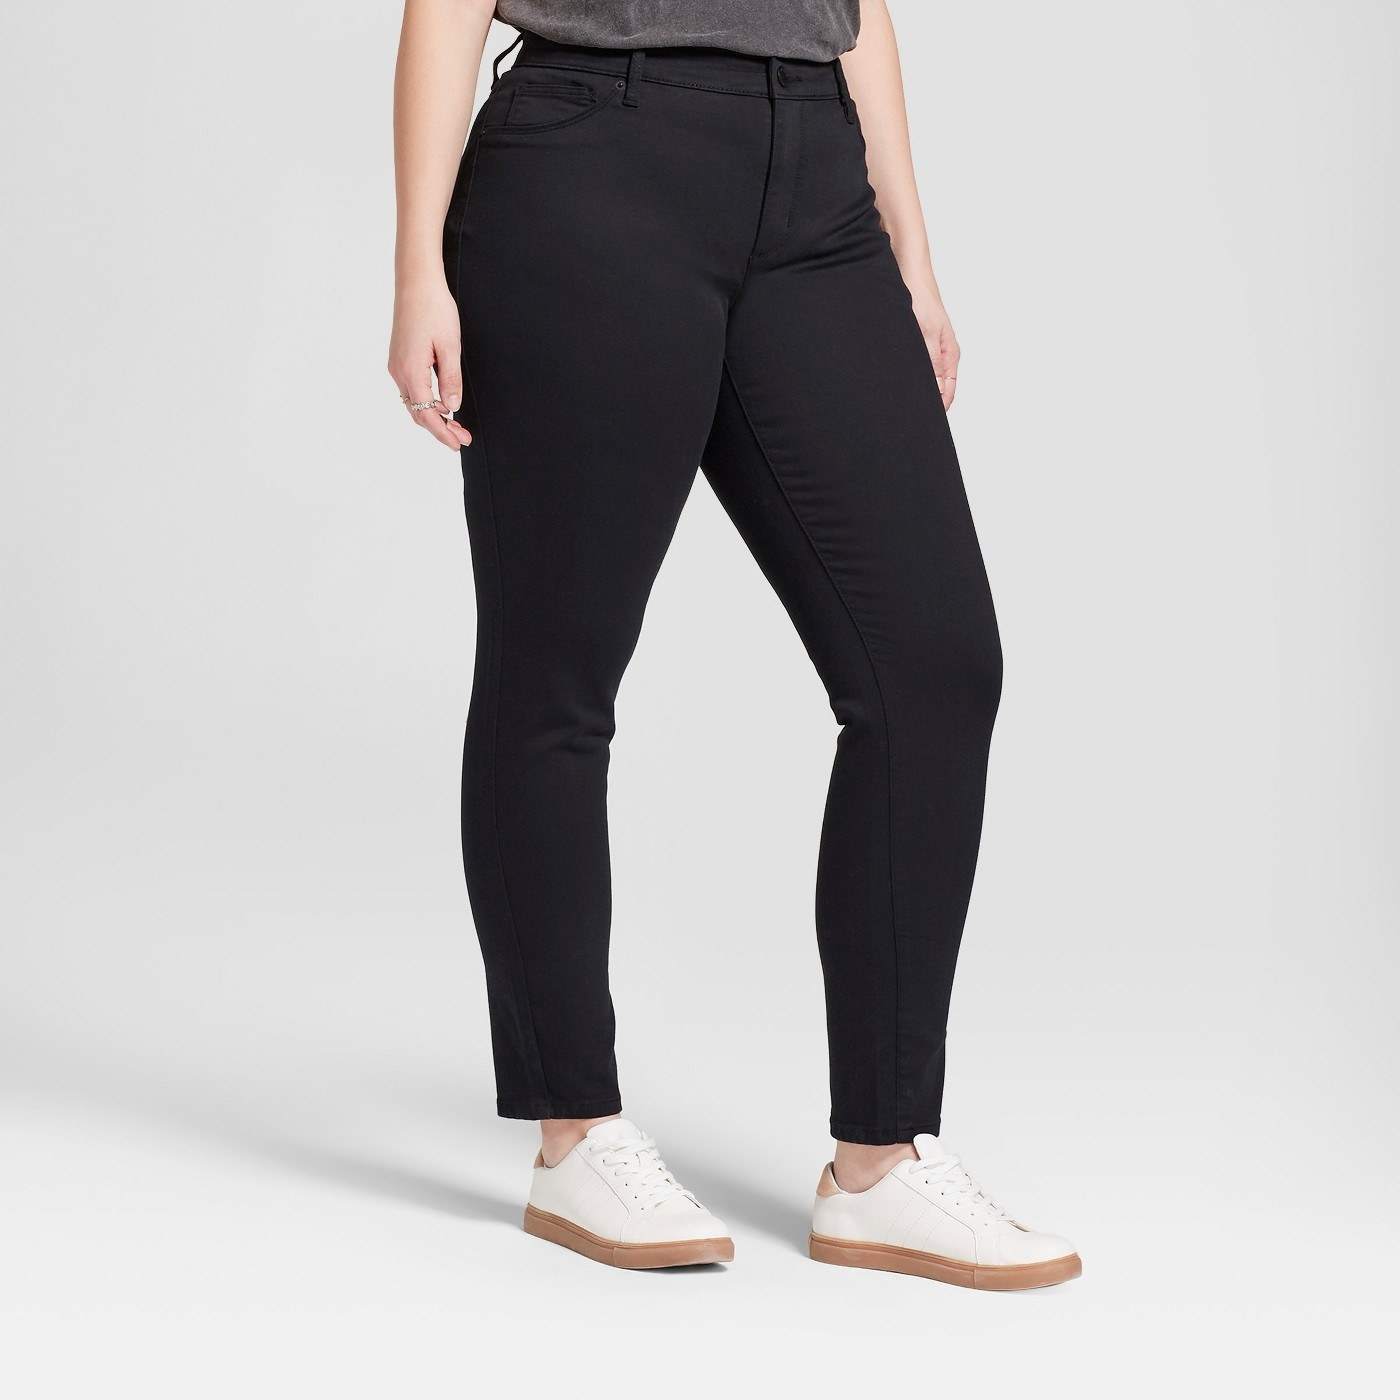 524dba294e Target, for affordable jeans designed with a variety of sizes and body  types in mind.